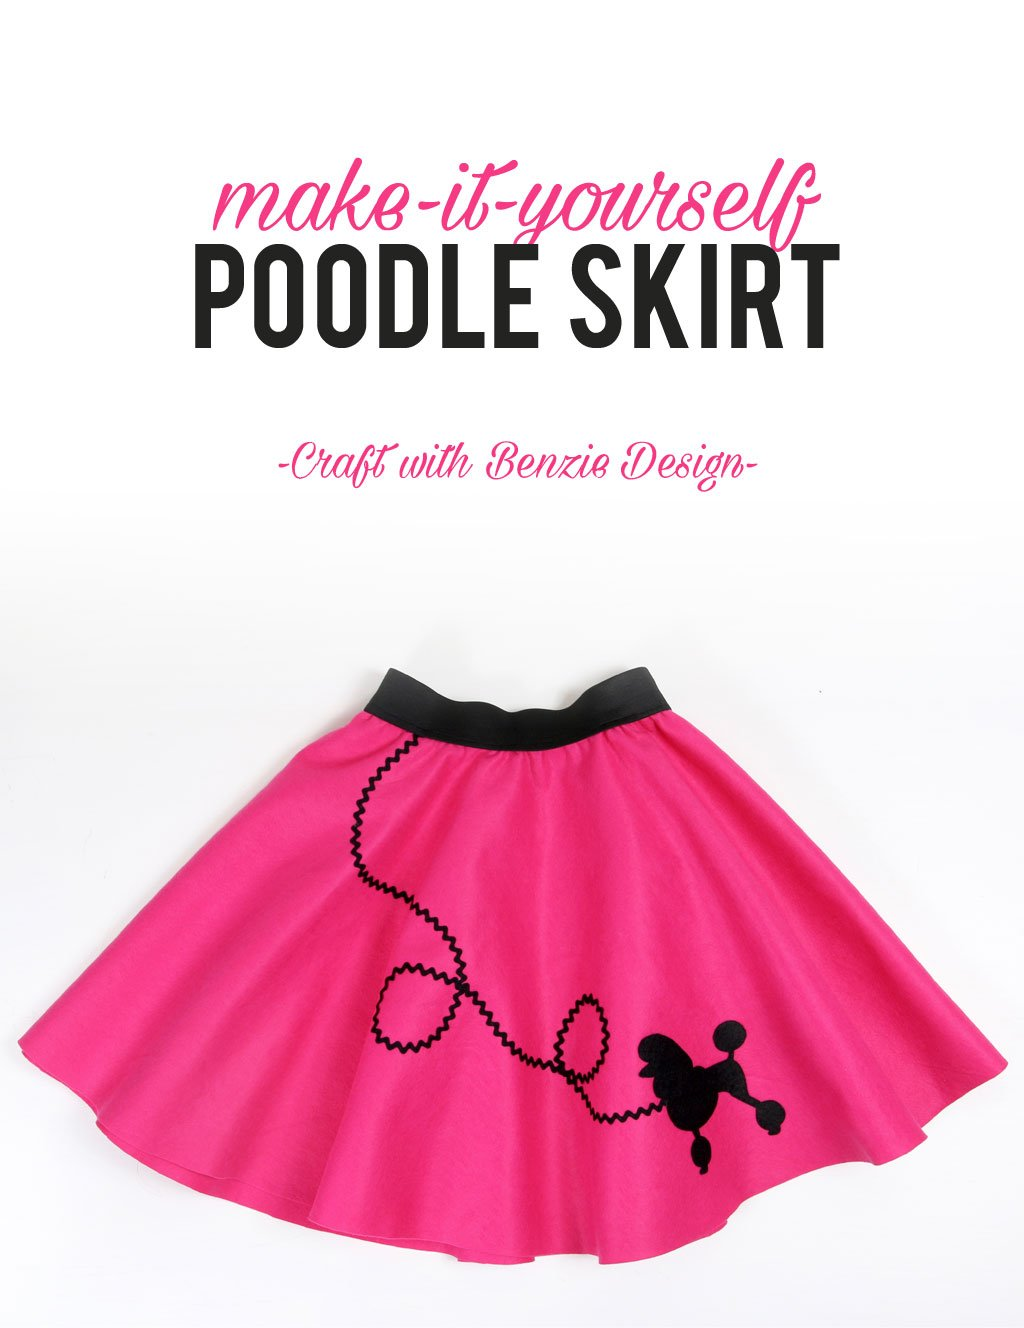 Tutorial: How to make a poodle skirt